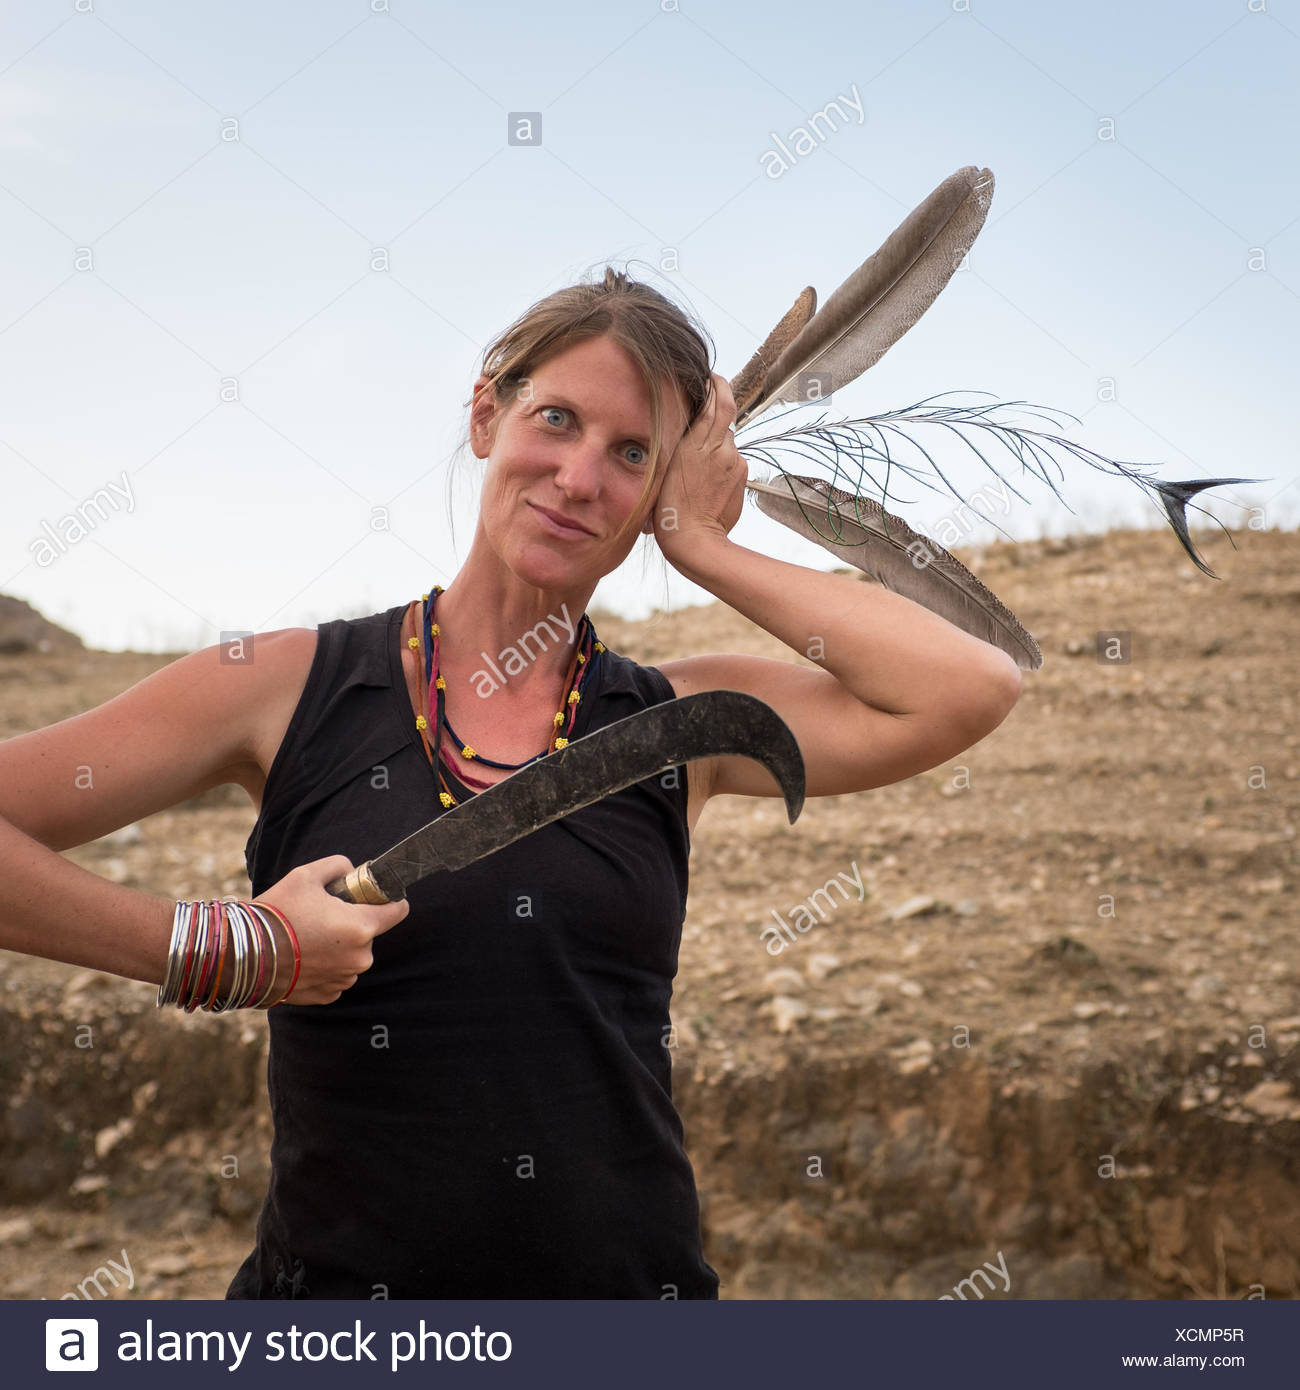 A German woman plays with feathers in her hair. - Stock Image